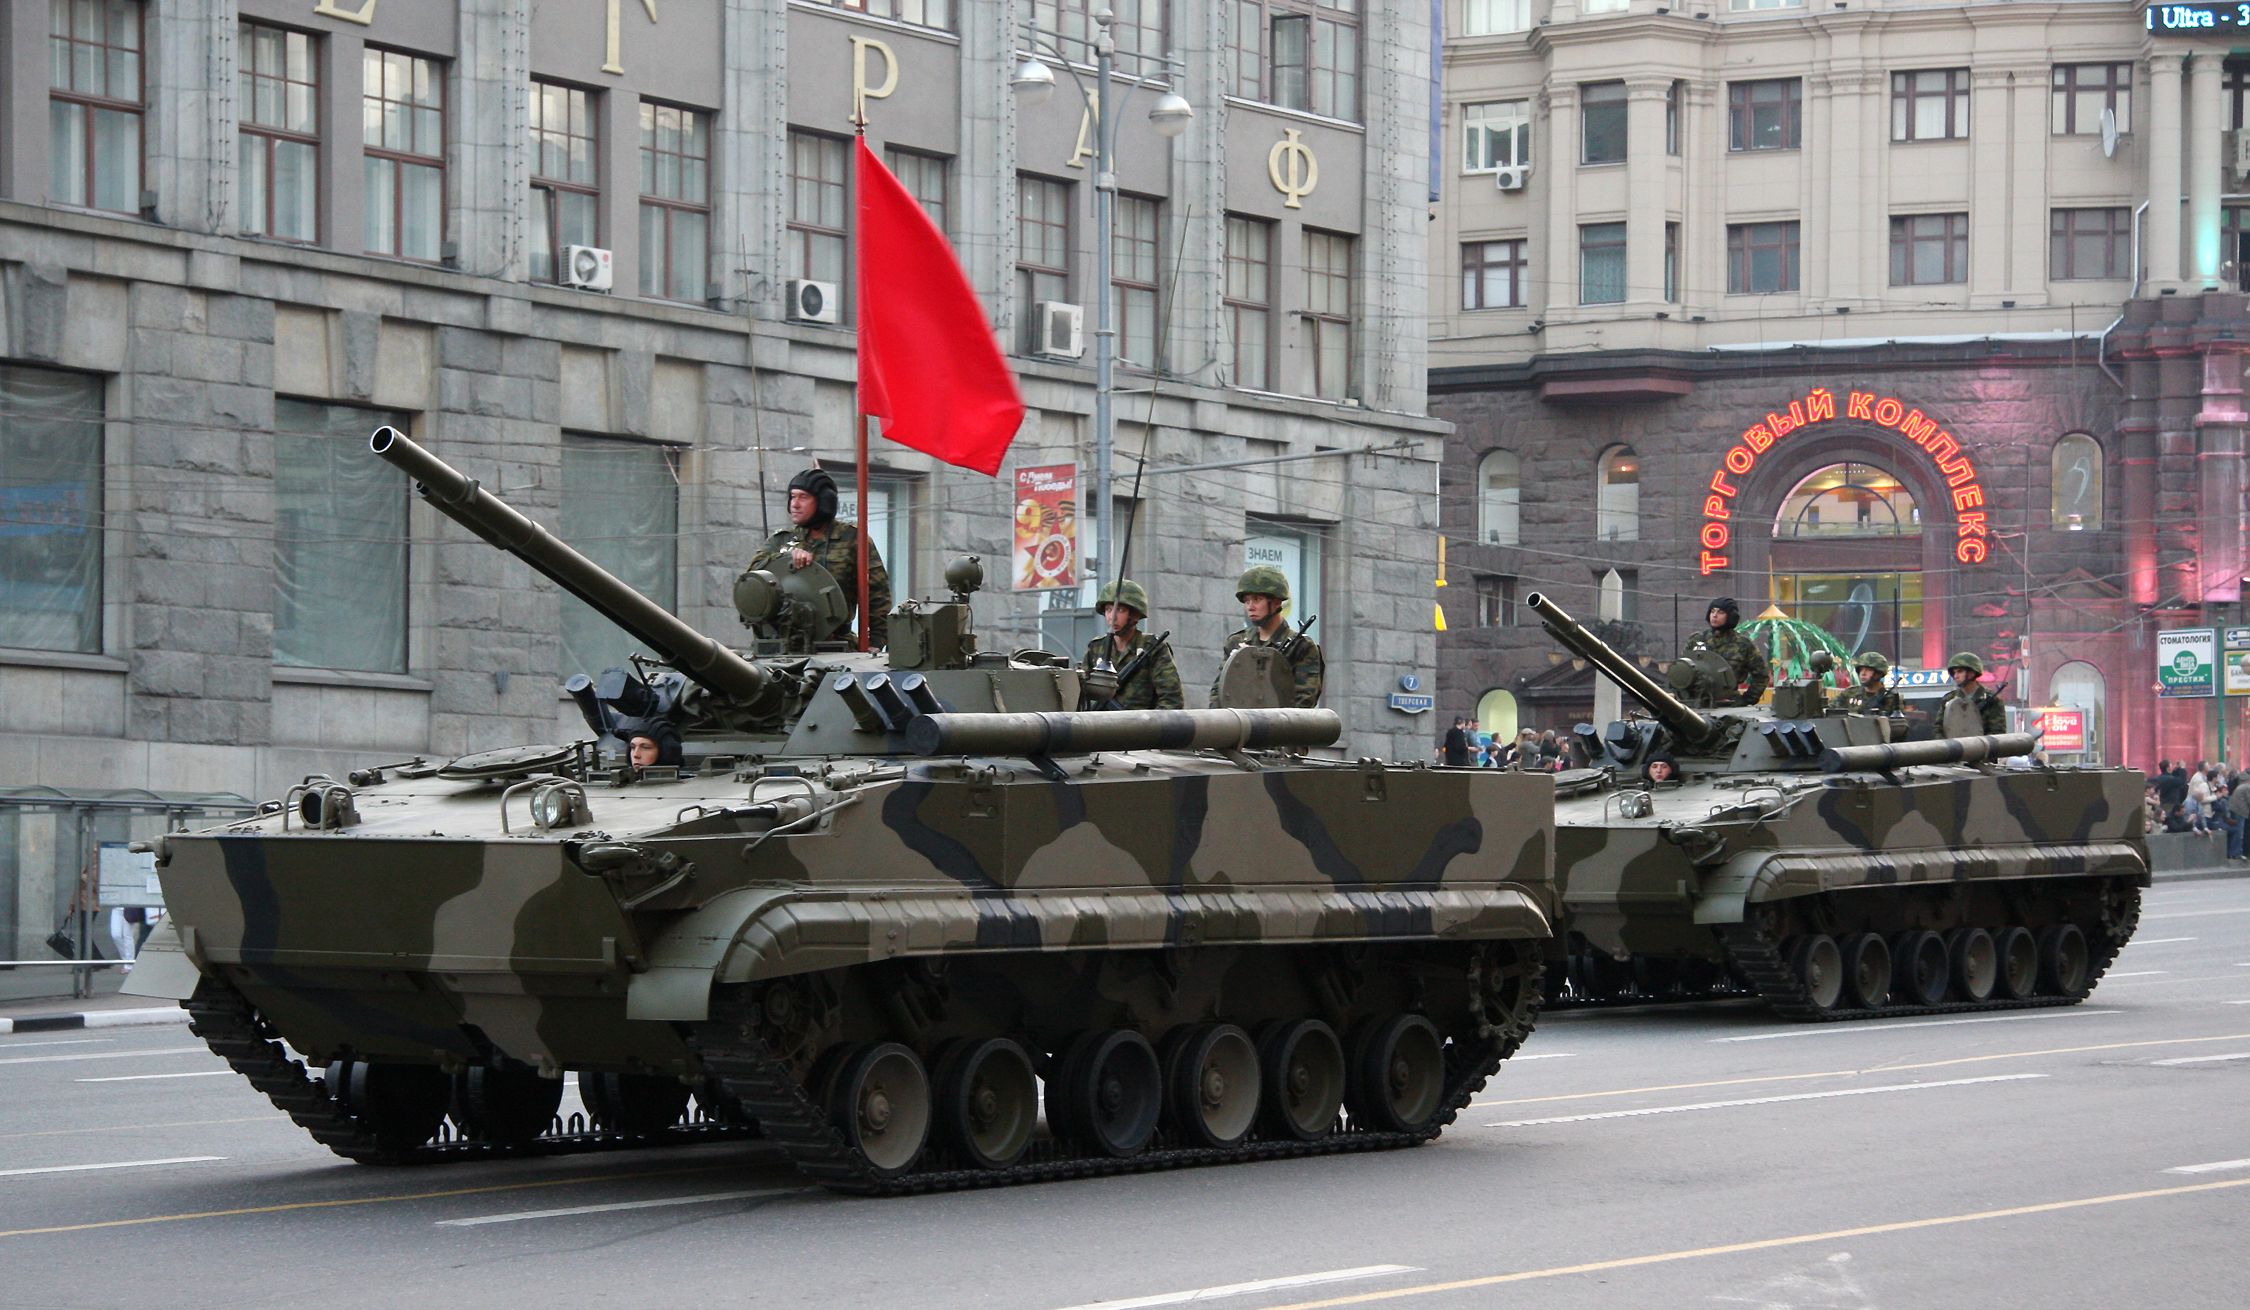 The large main cannon (100mm) of the Russian BMP-3 IFV gives it a tank-like appearance. However, the turret is too small for a tank, as are the treads and the chassis.